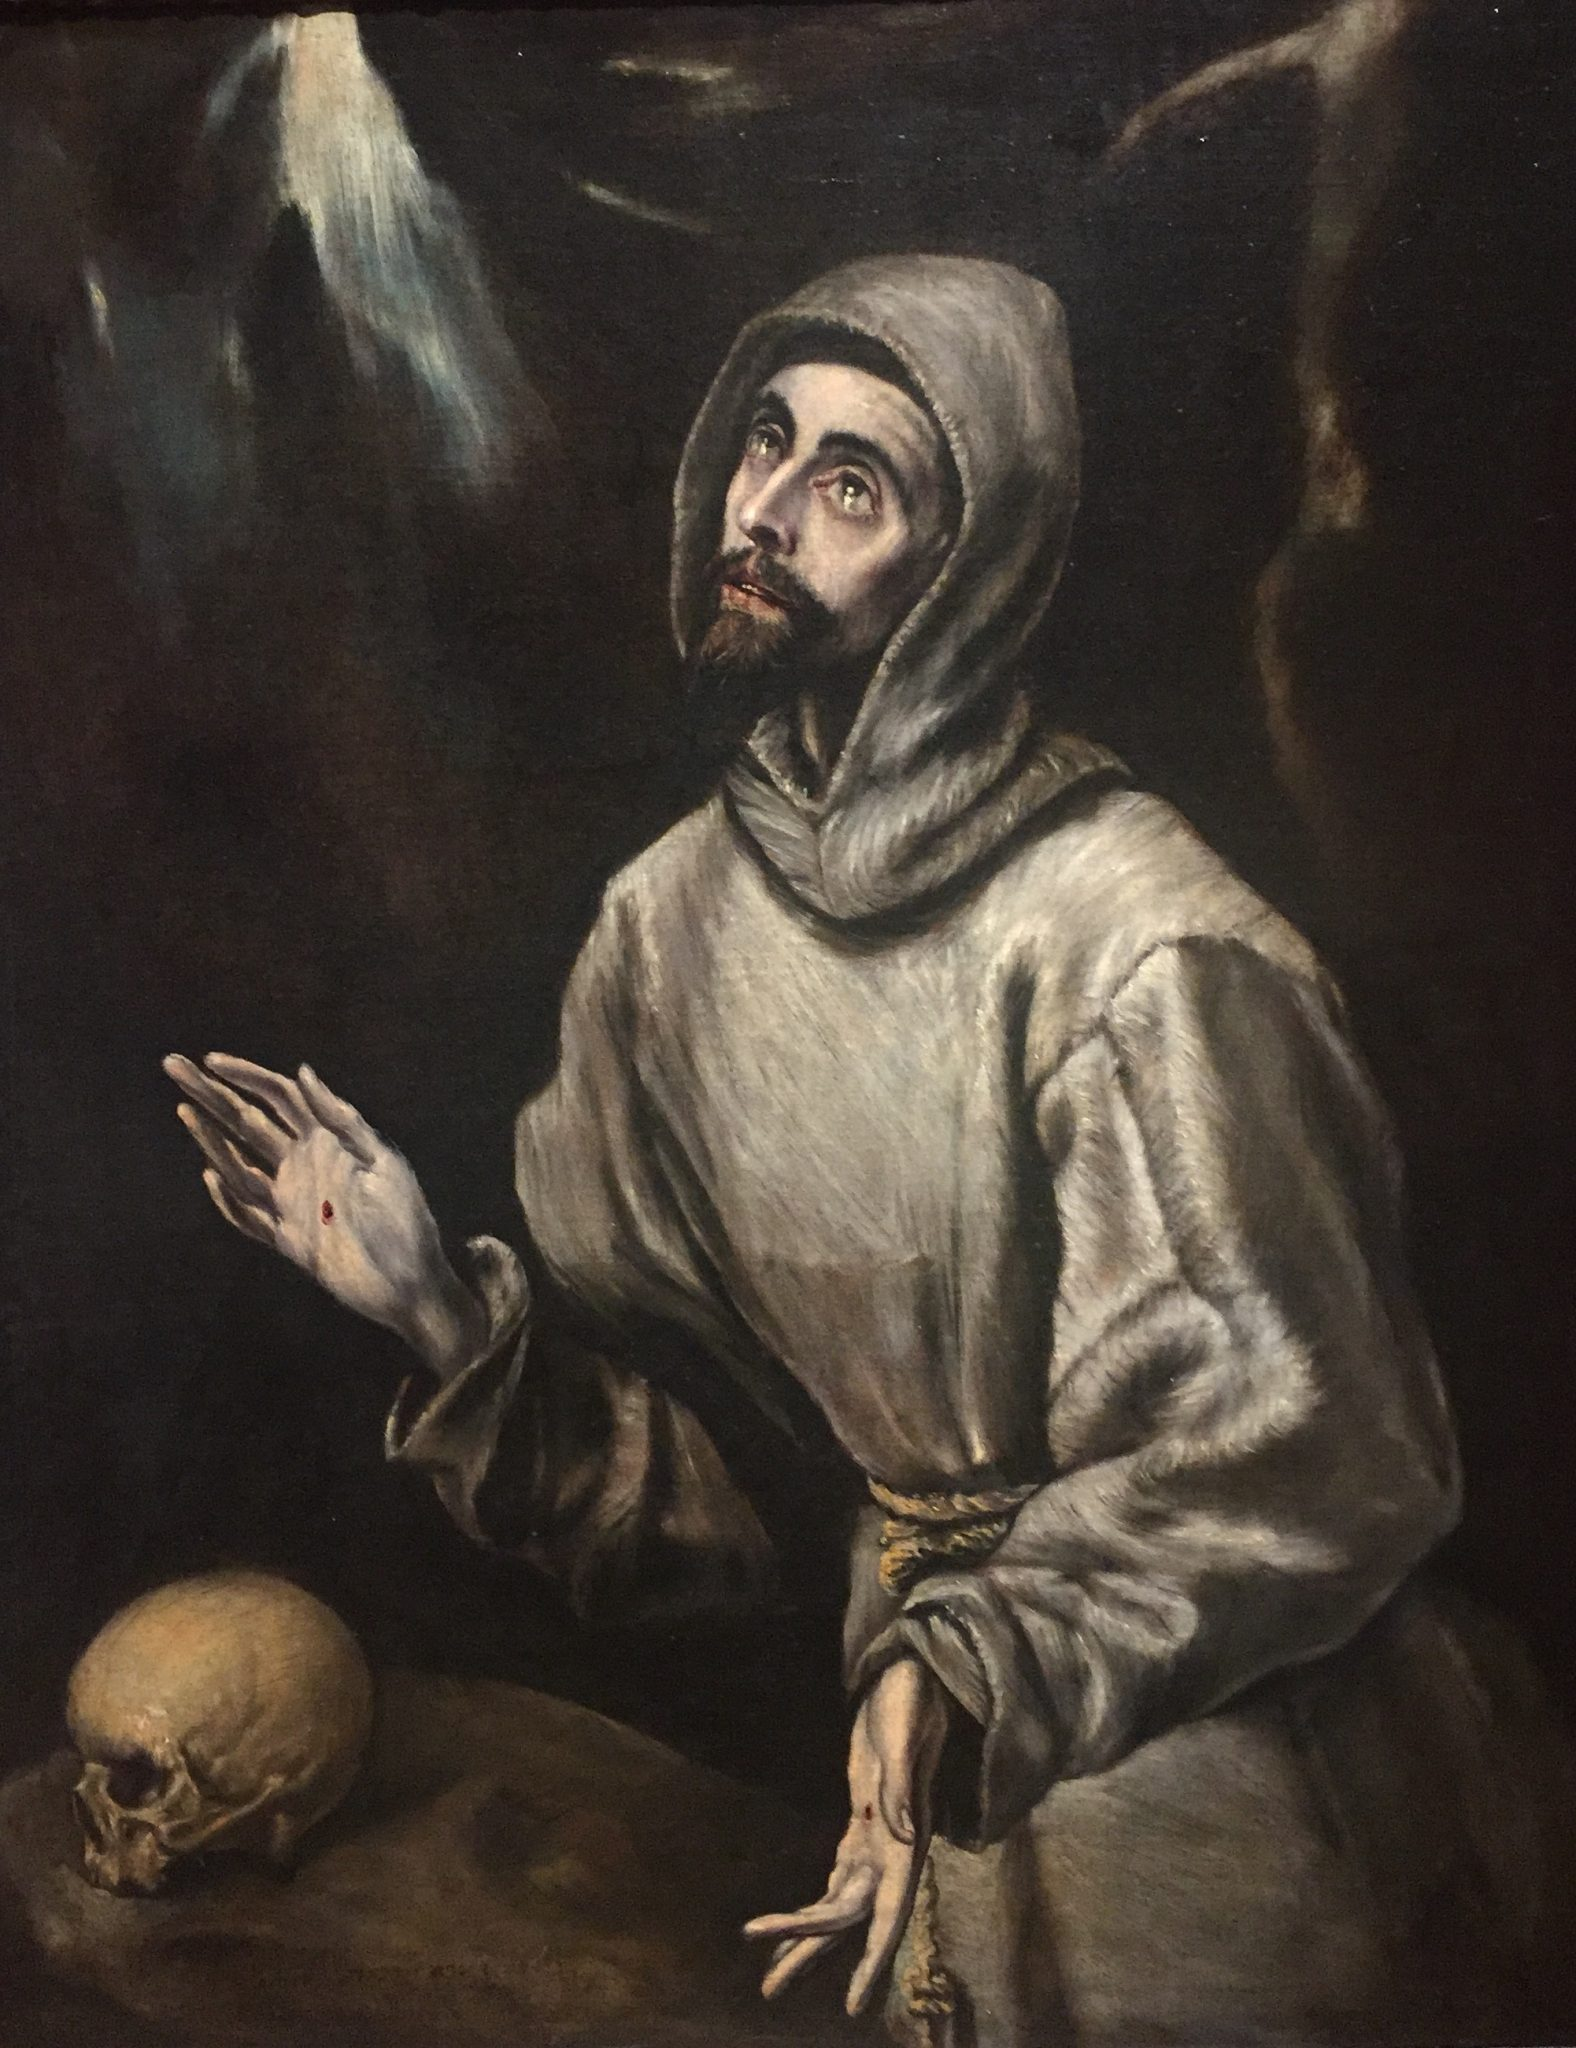 If you dare nomas galleries and garden include frightful el greco dominio theotokopoulos and studio st francis c 1570 oil on canvas lent by the estate of william g helis biocorpaavc Choice Image